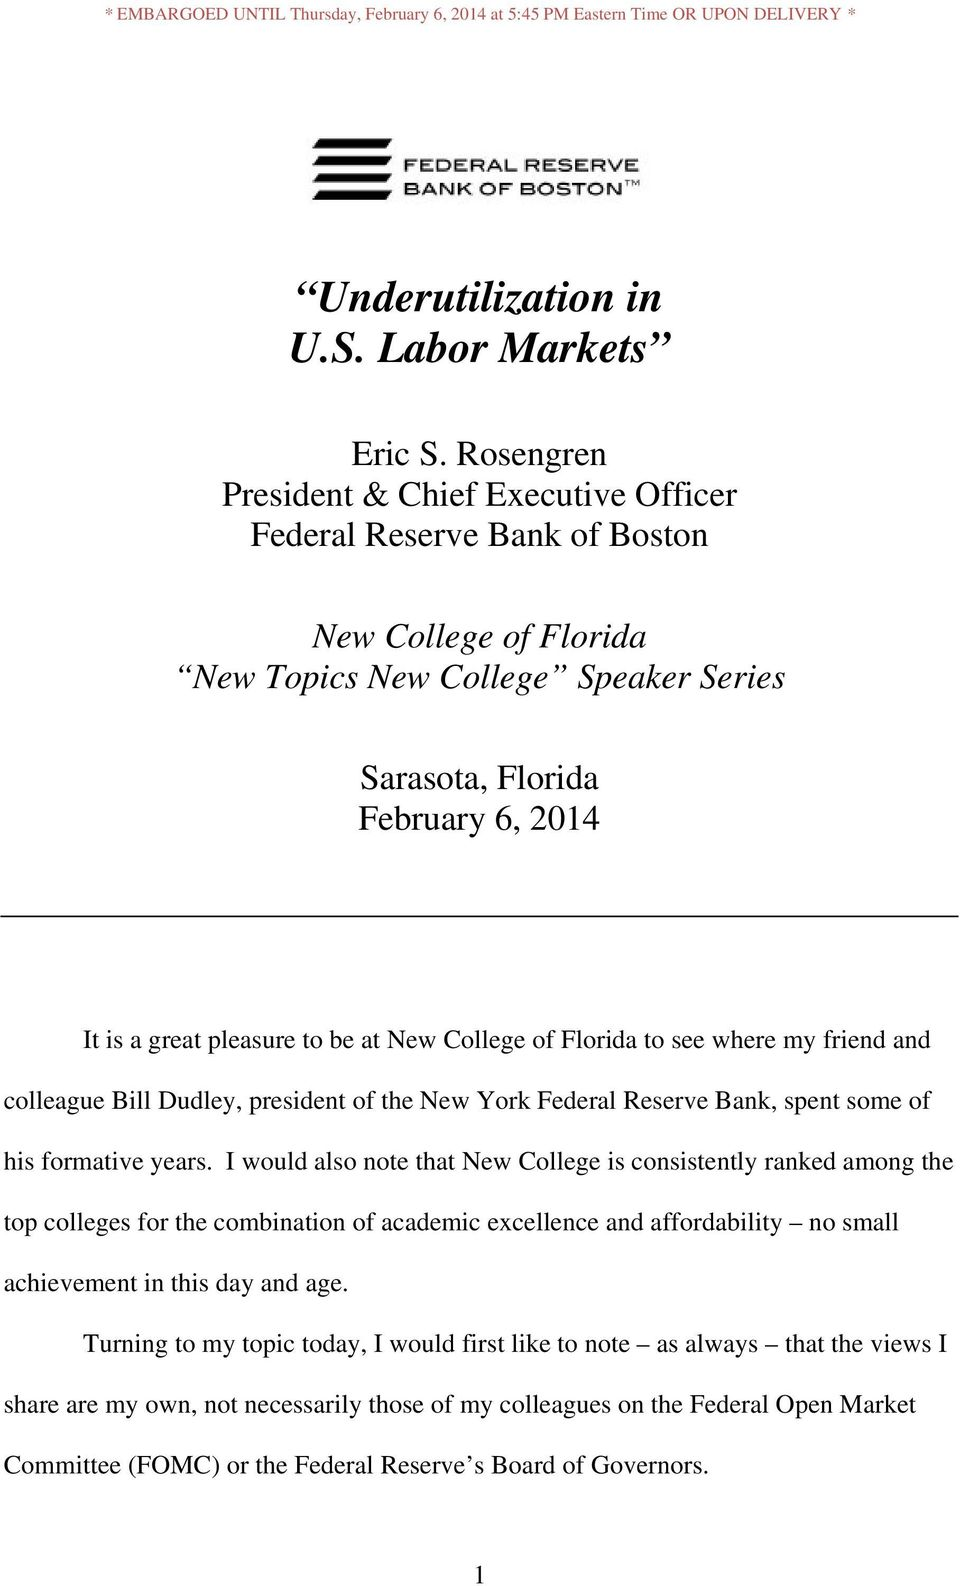 be at New College of Florida to see where my friend and colleague Bill Dudley, president of the New York Federal Reserve Bank, spent some of his formative years.